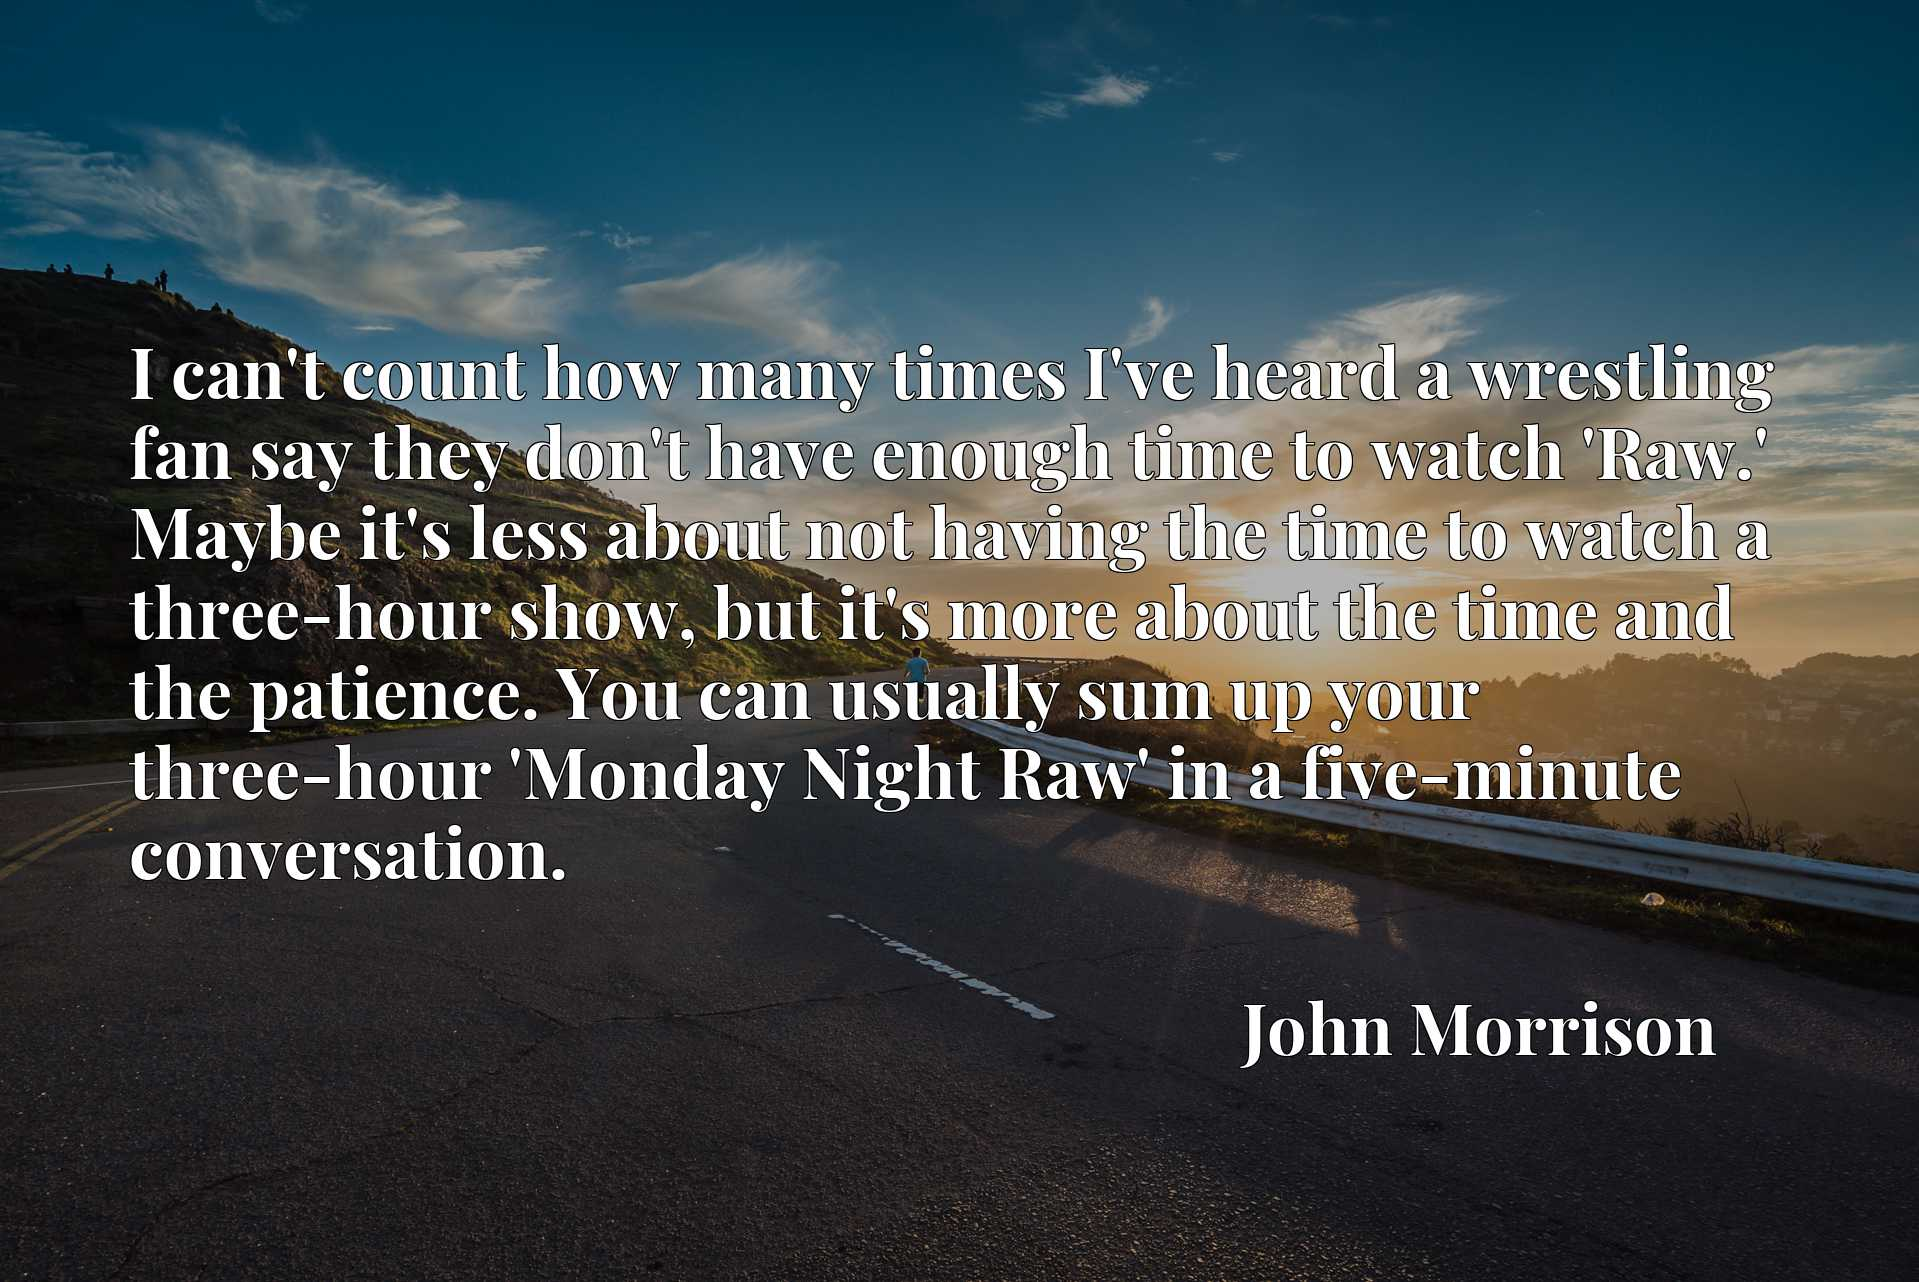 I can't count how many times I've heard a wrestling fan say they don't have enough time to watch 'Raw.' Maybe it's less about not having the time to watch a three-hour show, but it's more about the time and the patience. You can usually sum up your three-hour 'Monday Night Raw' in a five-minute conversation.